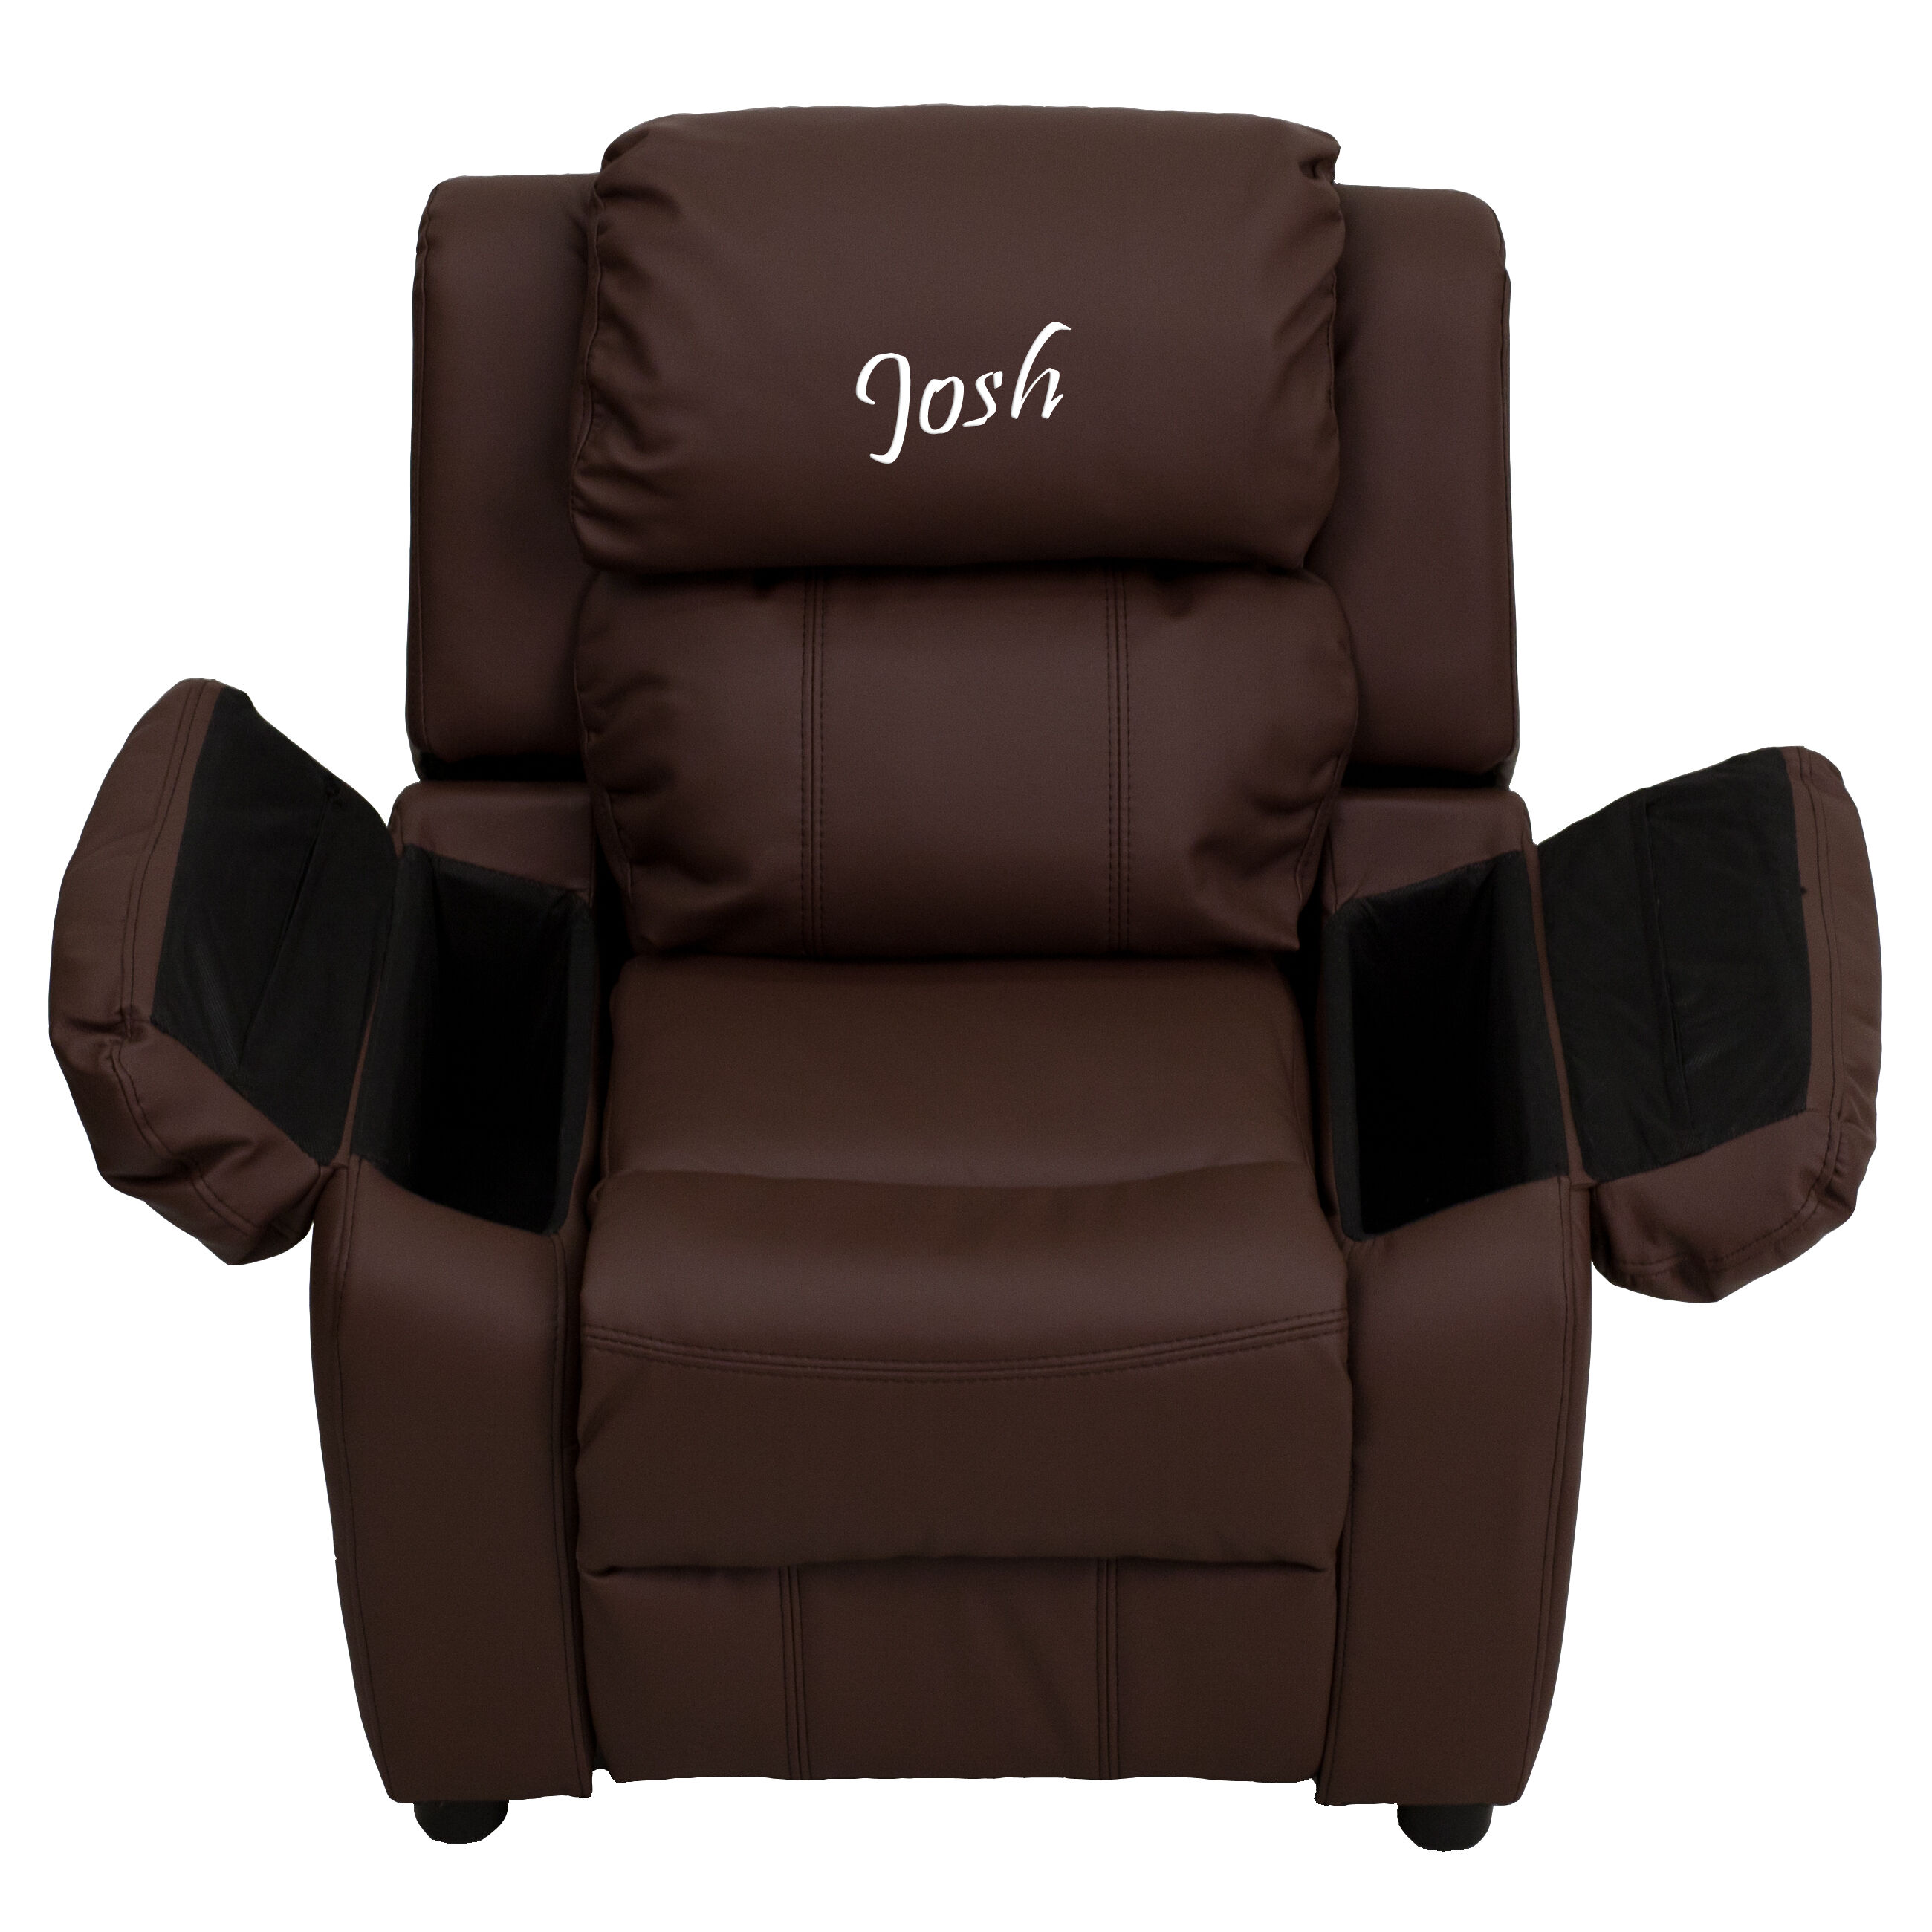 Images. Personalized Deluxe Padded Brown Leather Kids Recliner ...  sc 1 st  Bizchair.com & Flash Furniture BT-7985-KID-BRN-LEA-EMB-GG at Bizchair.com islam-shia.org